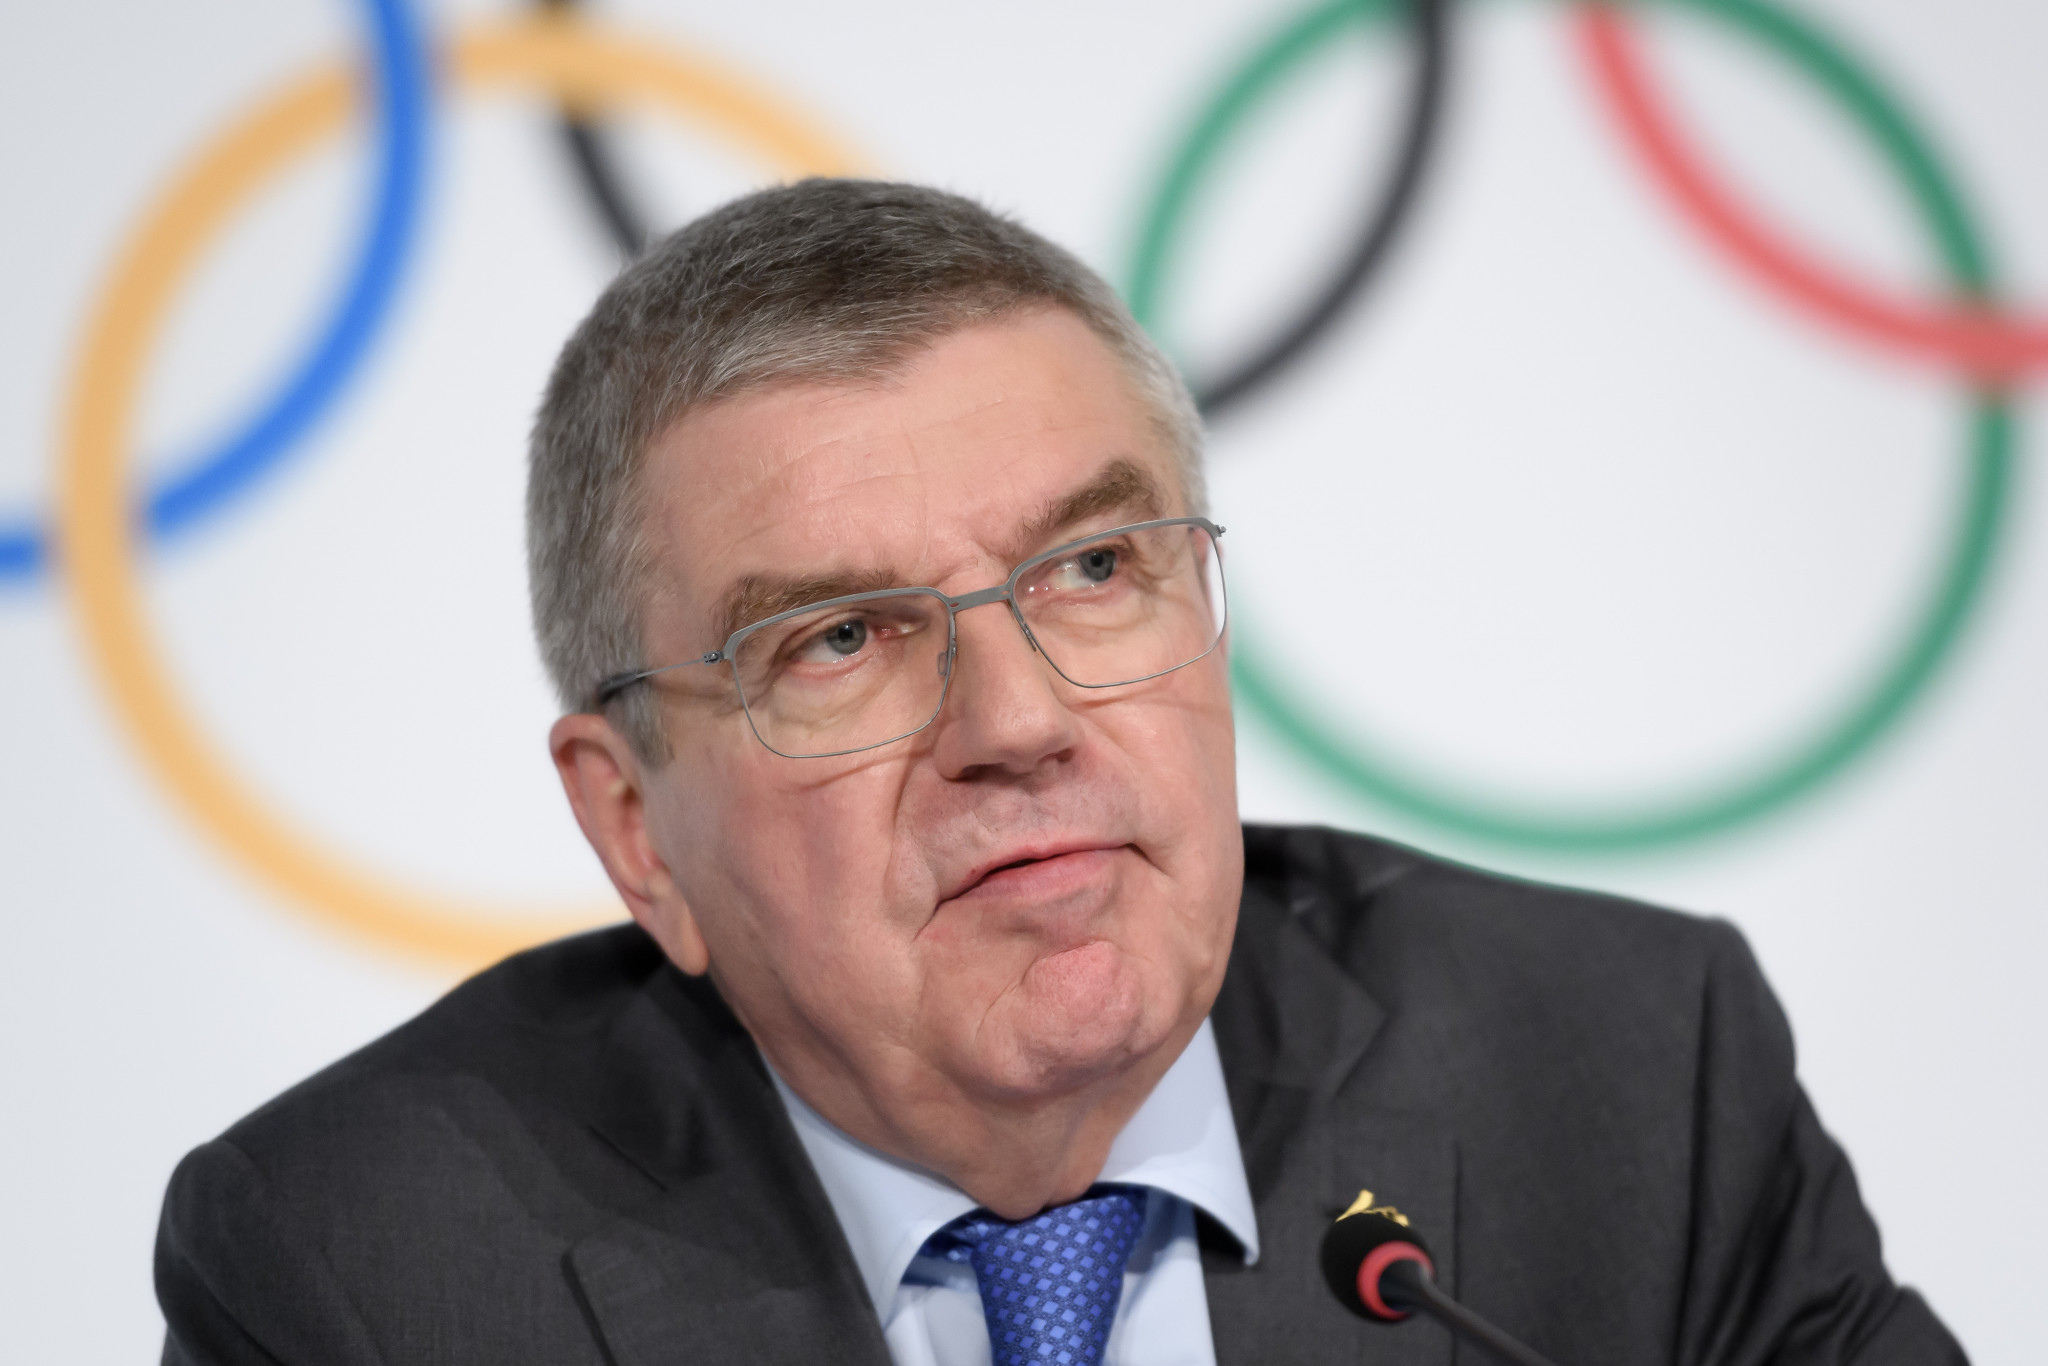 Bach confirms IOC bound by WADA decision on Russia